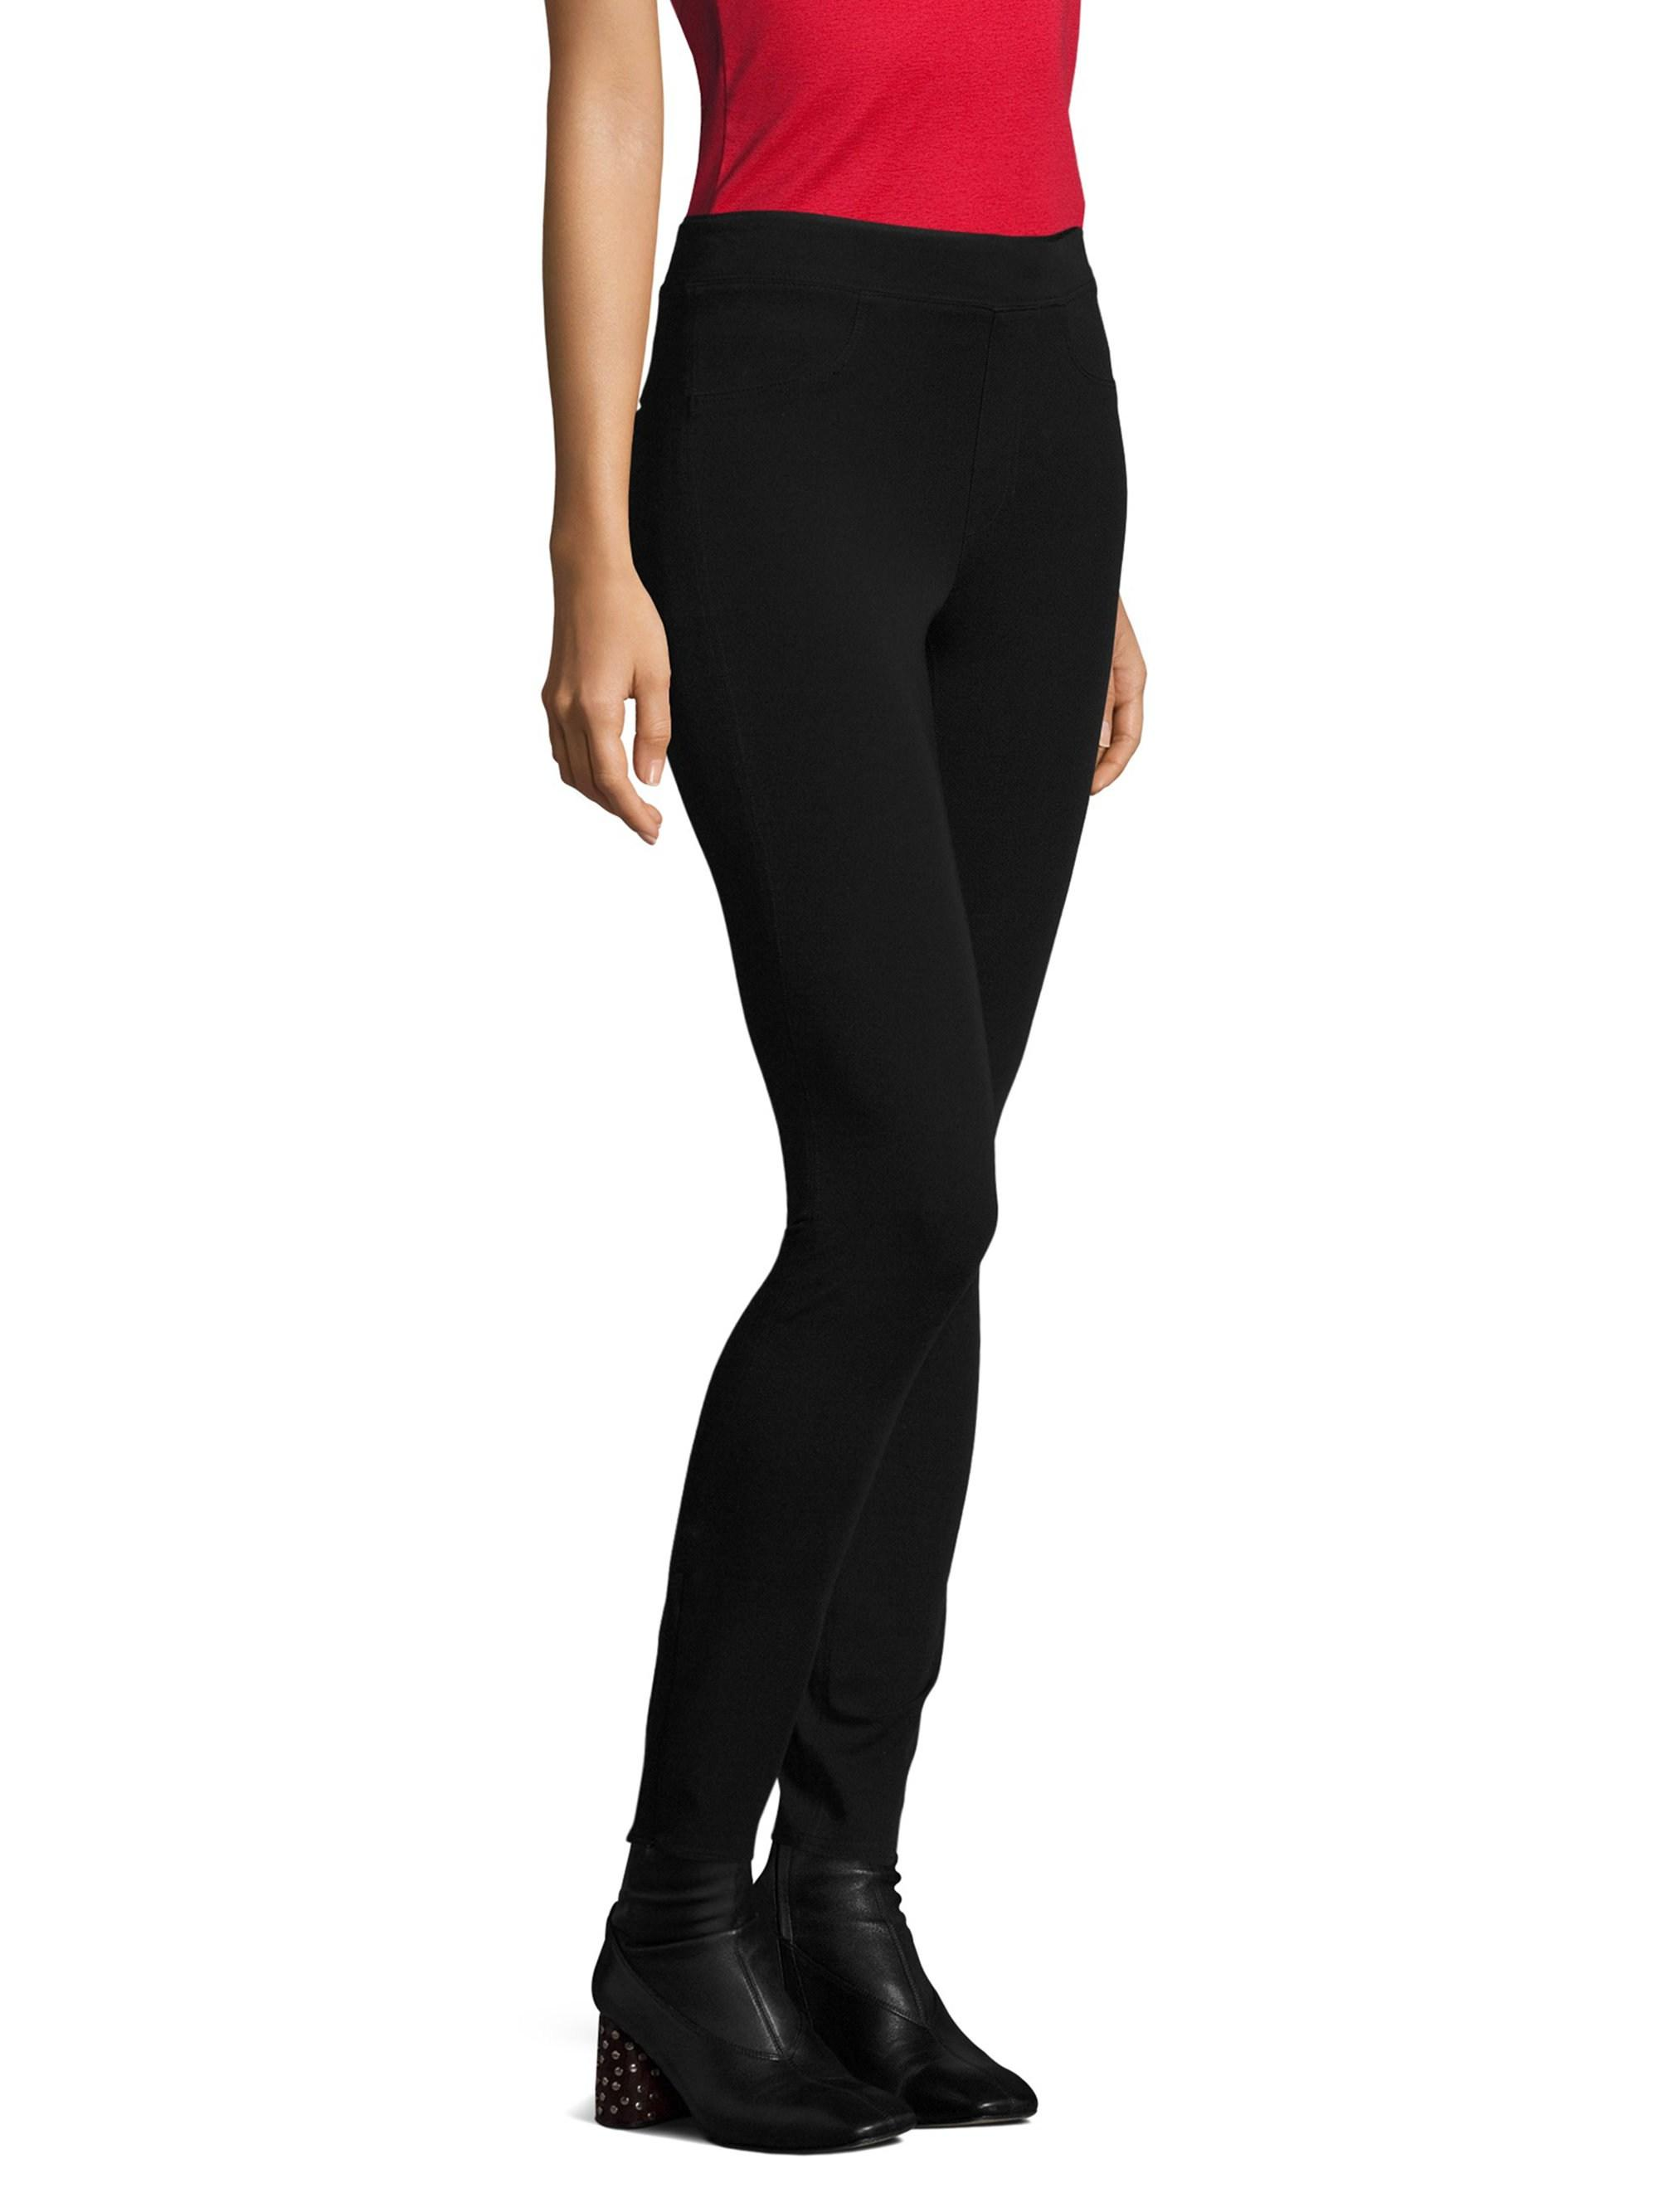 454443d05f124 Gallery. Previously sold at: Saks Fifth Avenue · Women's Velvet Pants ...